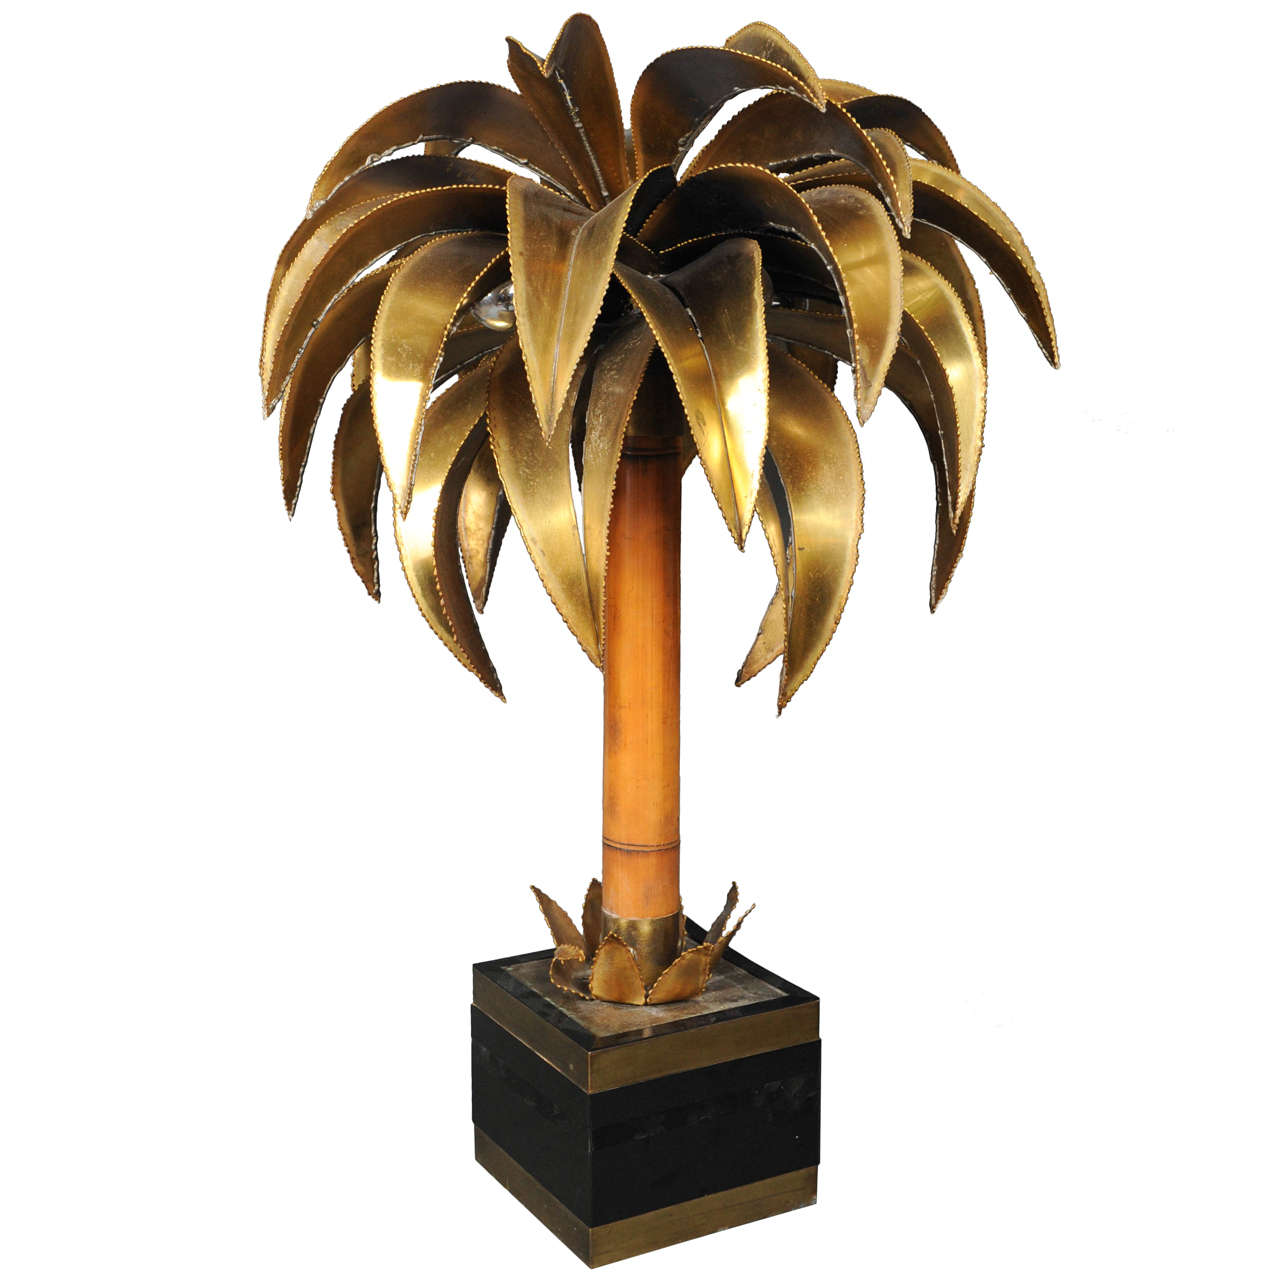 huge 6 feet tall copper 3-trunk Maison Jansen palm tree floorlamp